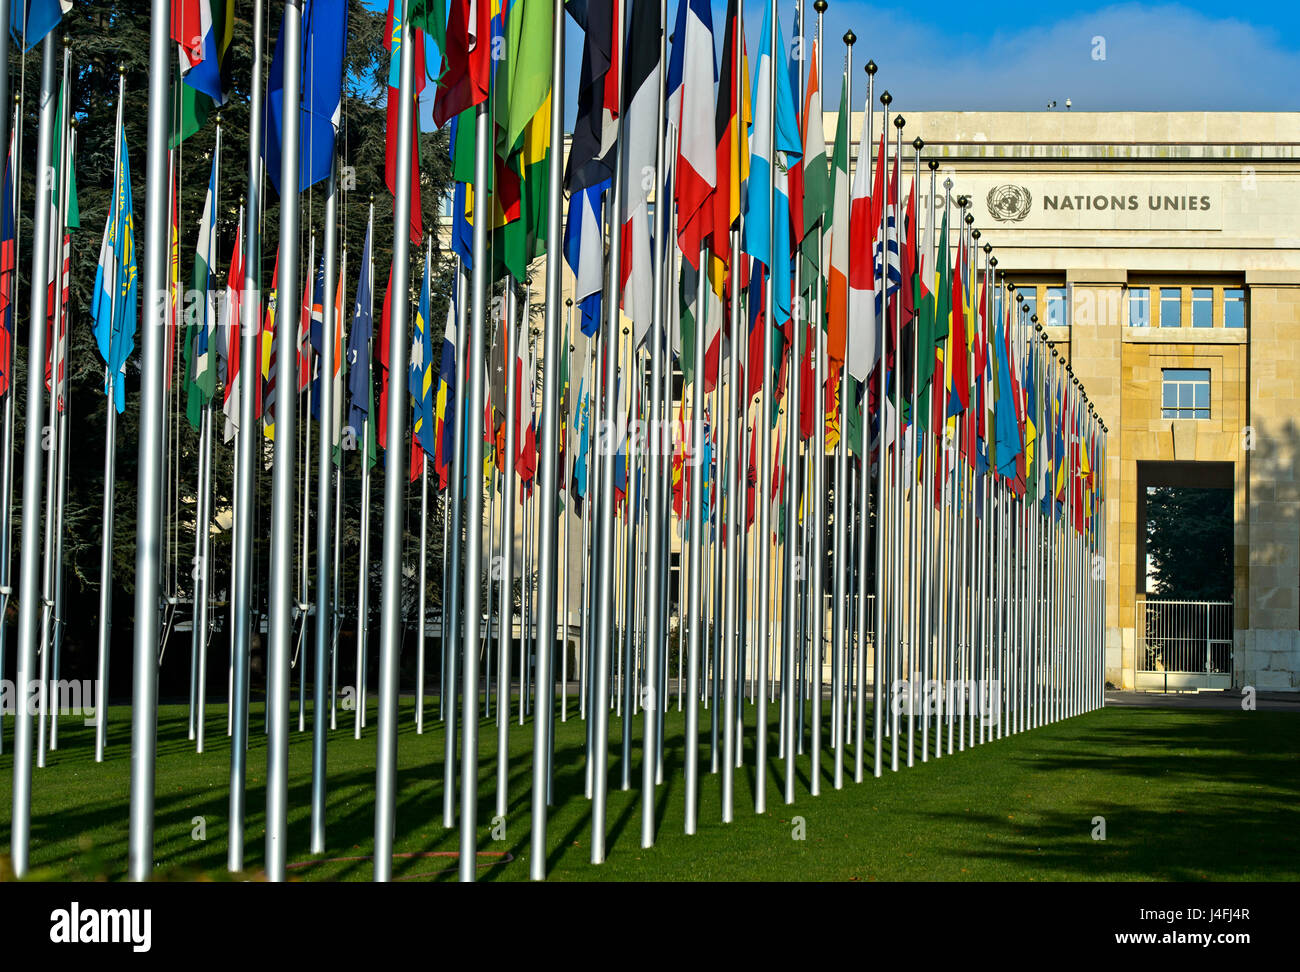 Court of flags at the United Nations Office at Geneva, UNO, Palais des Nations, Geneva, Switzerland - Stock Image